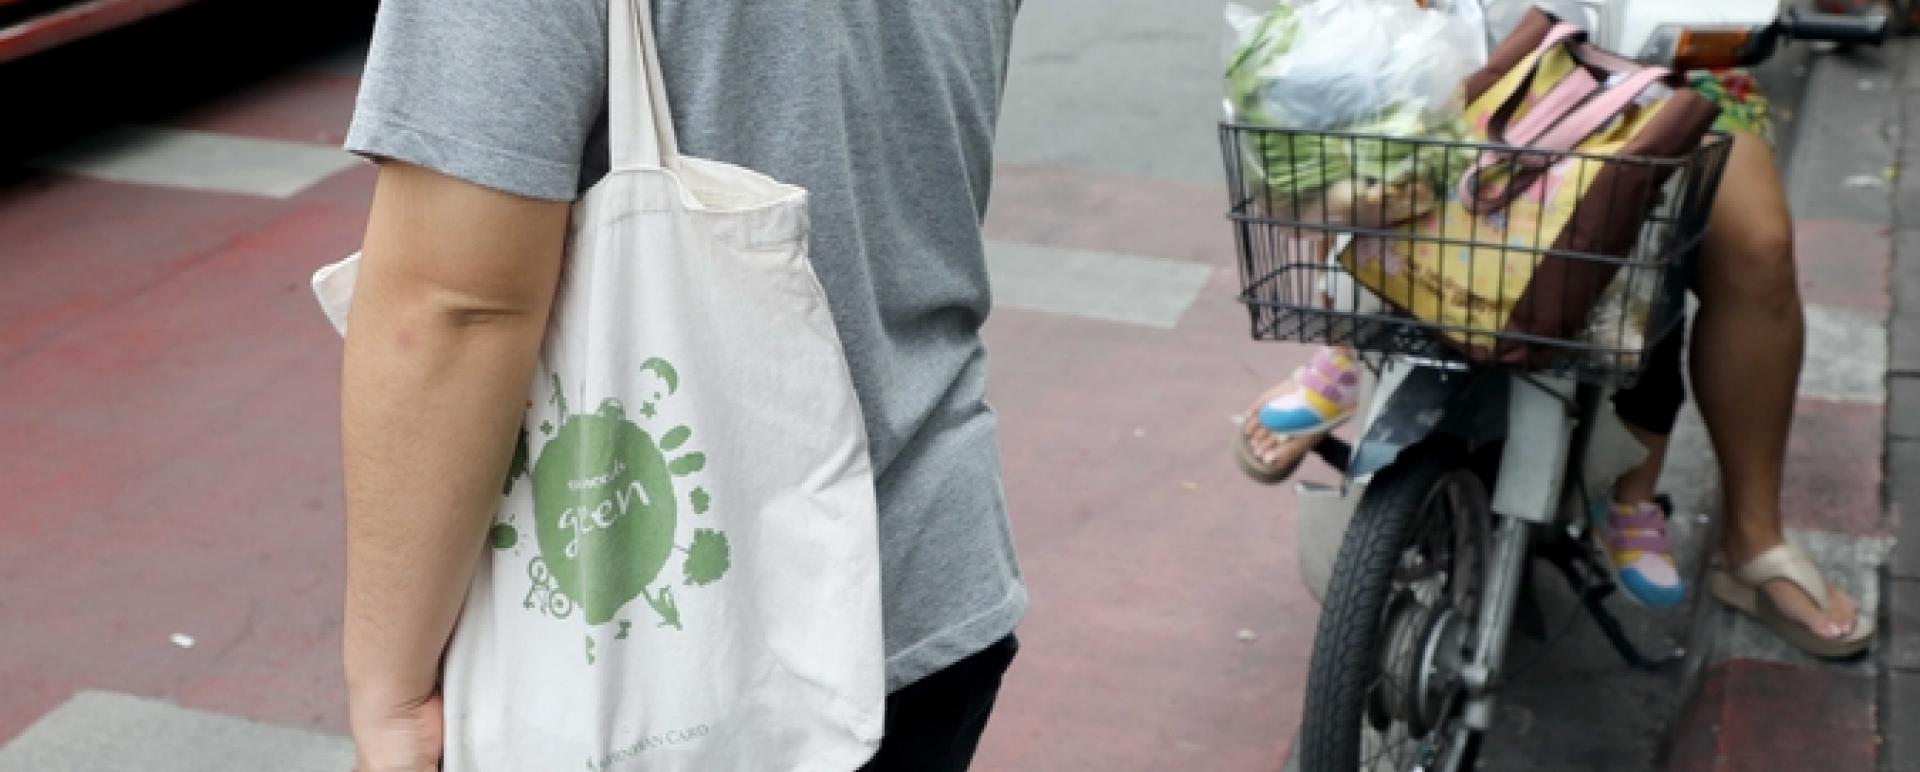 Old habits die hard: Stores try to cut down on plastic bags